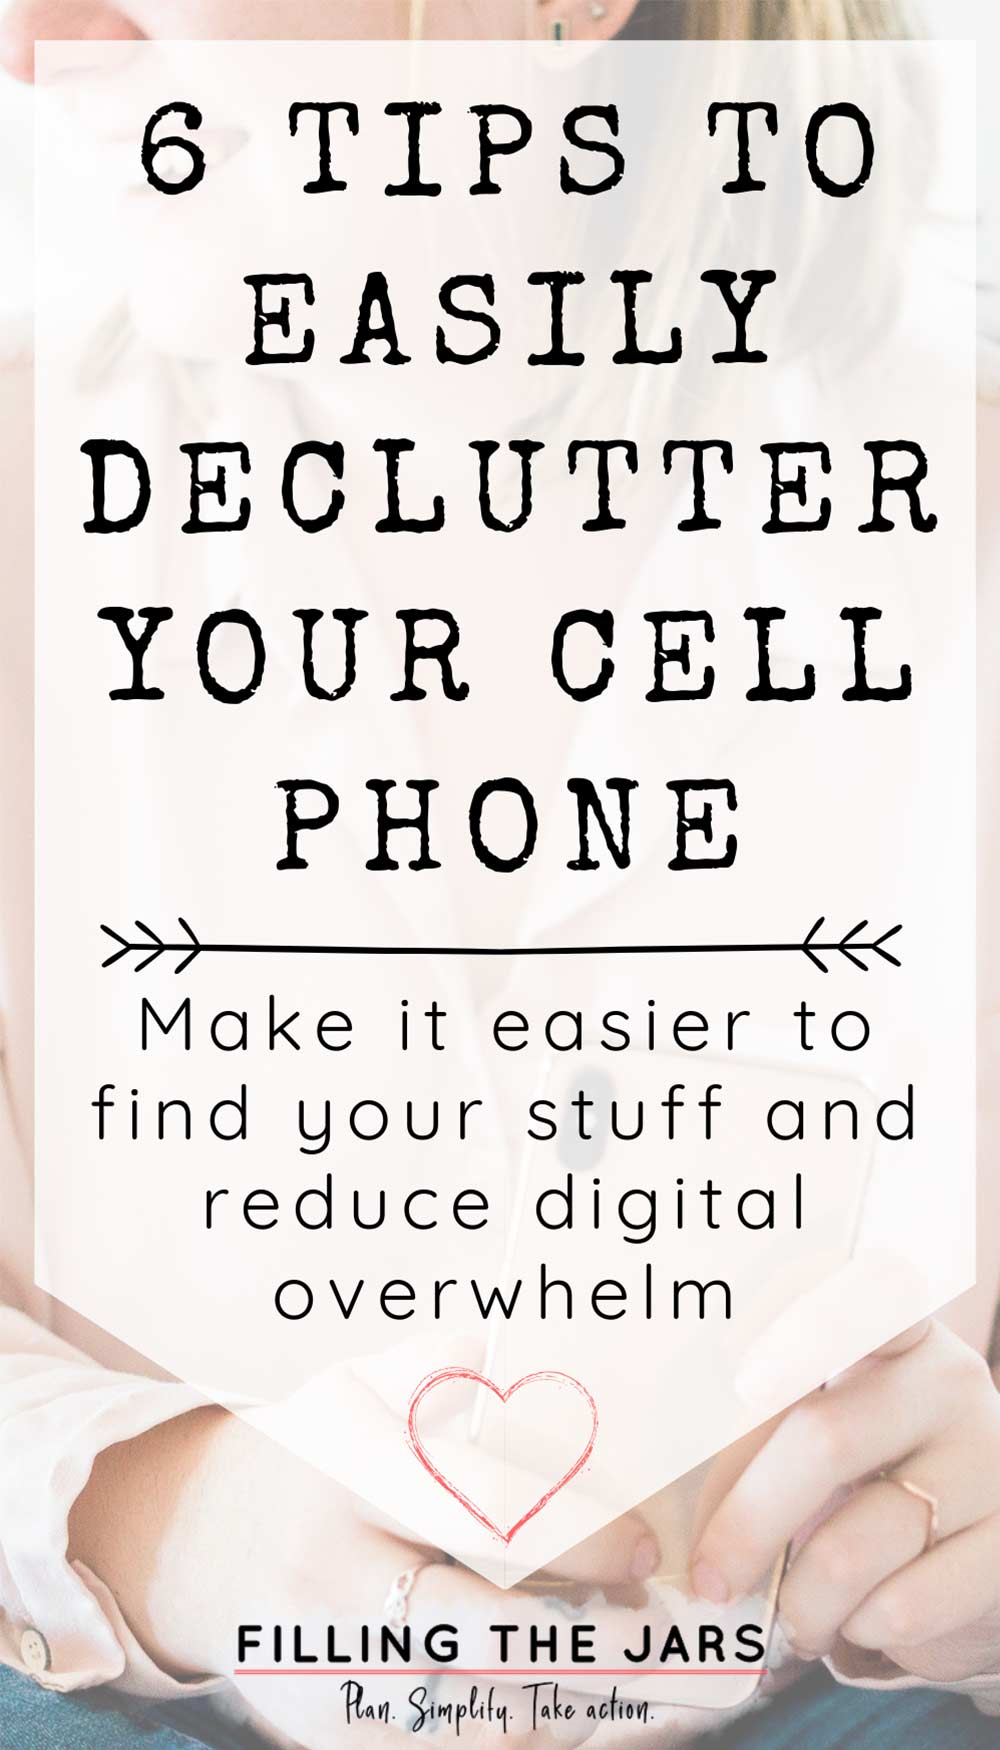 Text 6 tips to easily declutter your cell phone on white background over image of woman in pink shirt holding pink phone.